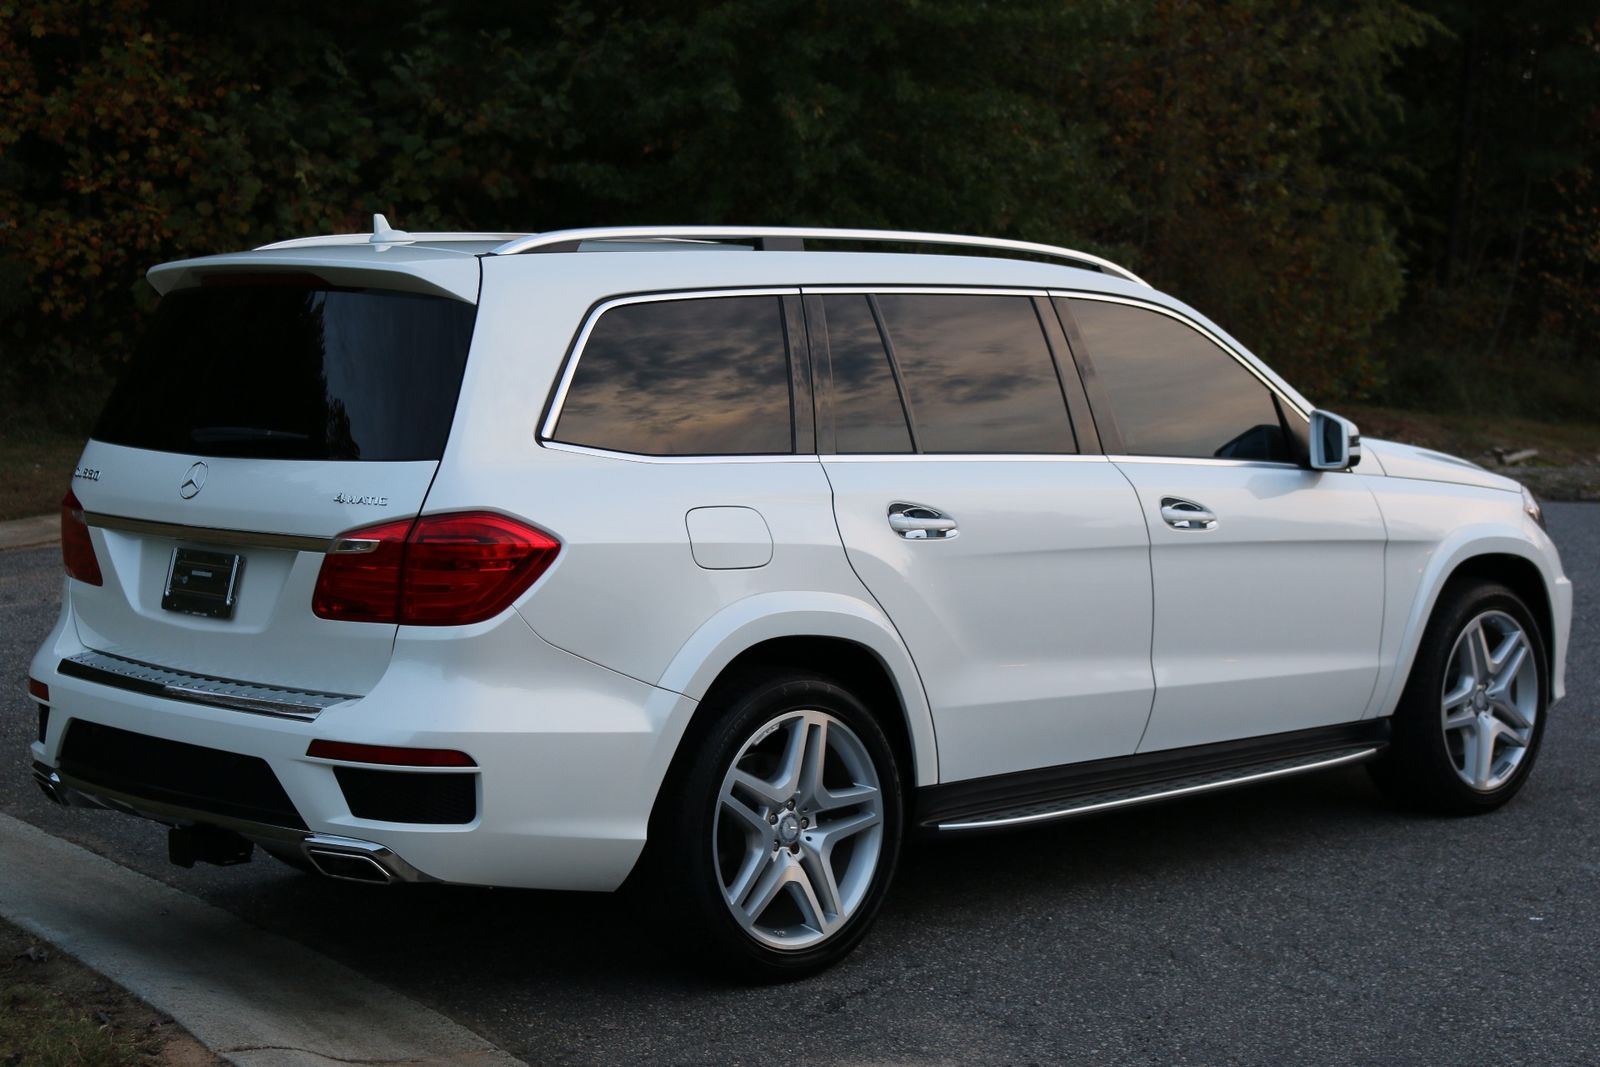 2015 gl 550 3rd row suv white blk dvd 34k mi like new in for White mercedes benz suv